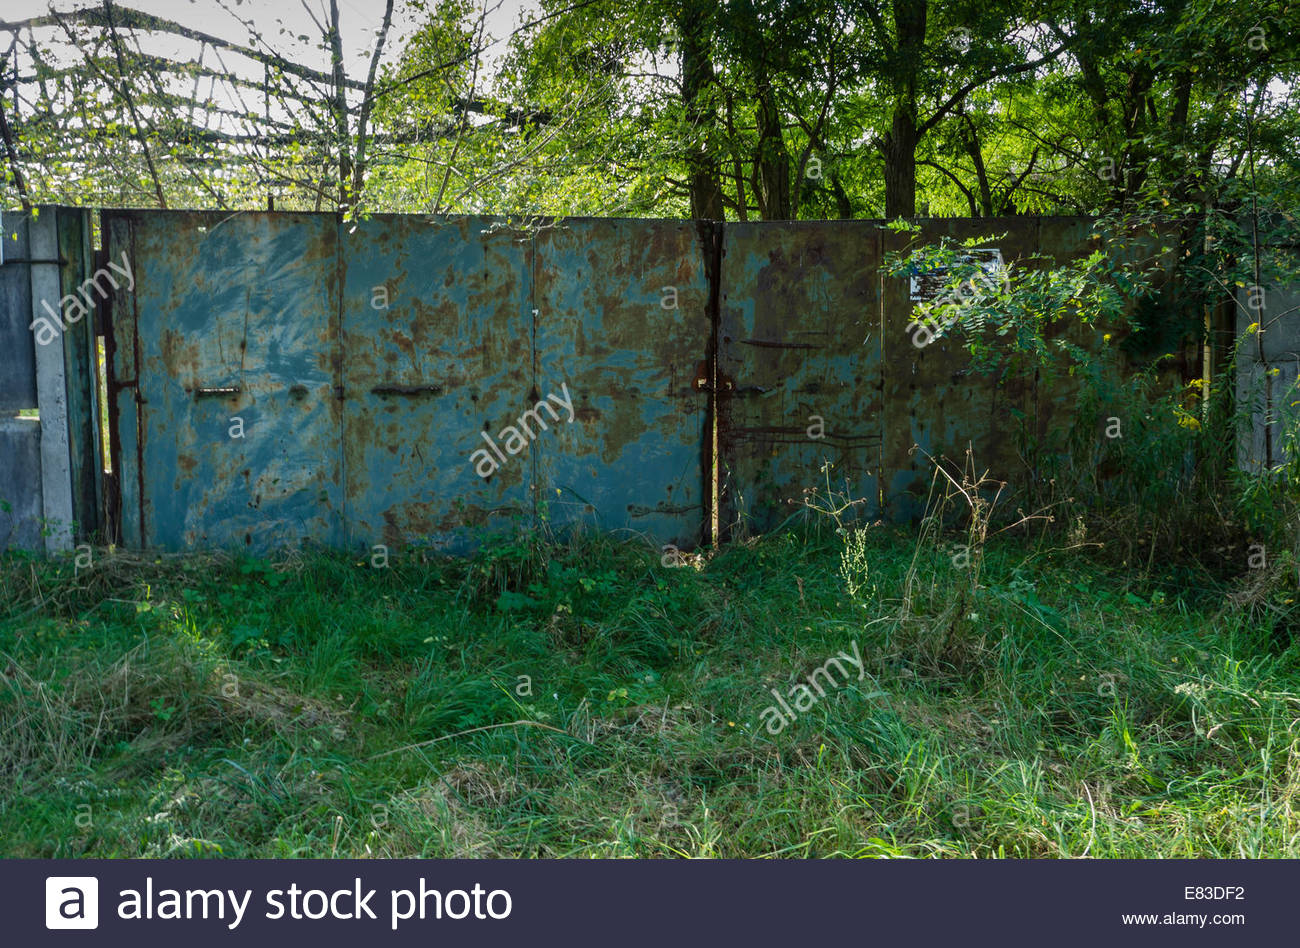 Old Soviet Airfield Finow  former DDR East Germany  Barracks Wall security fence Metal Gate  left behind by Russians - Stock Image